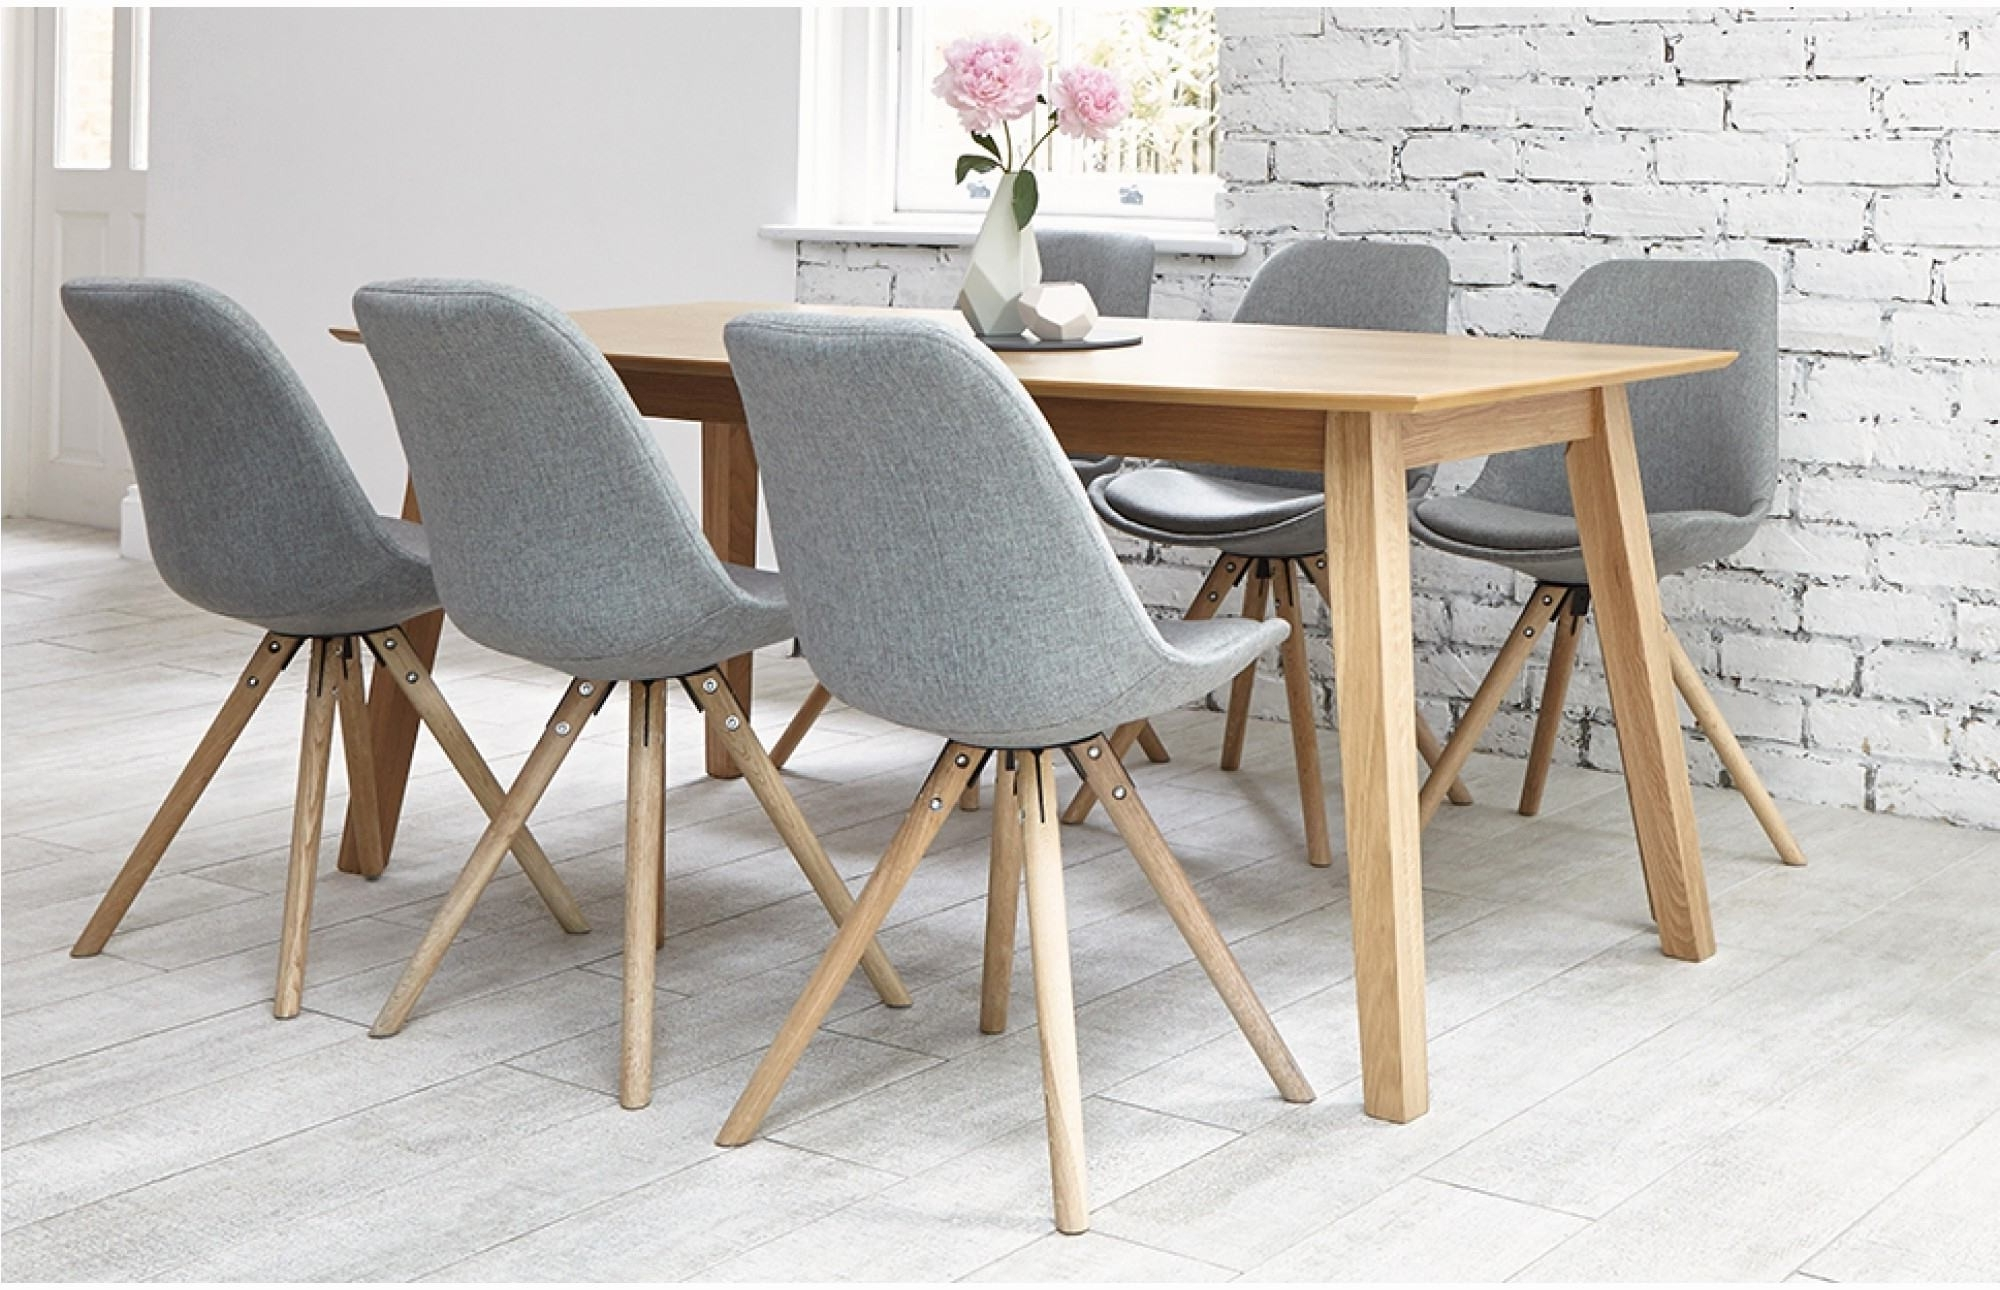 Small White Dining Tables Inside Famous Extendable Dining Tables For Small Spaces Inspirational Small White (View 18 of 25)